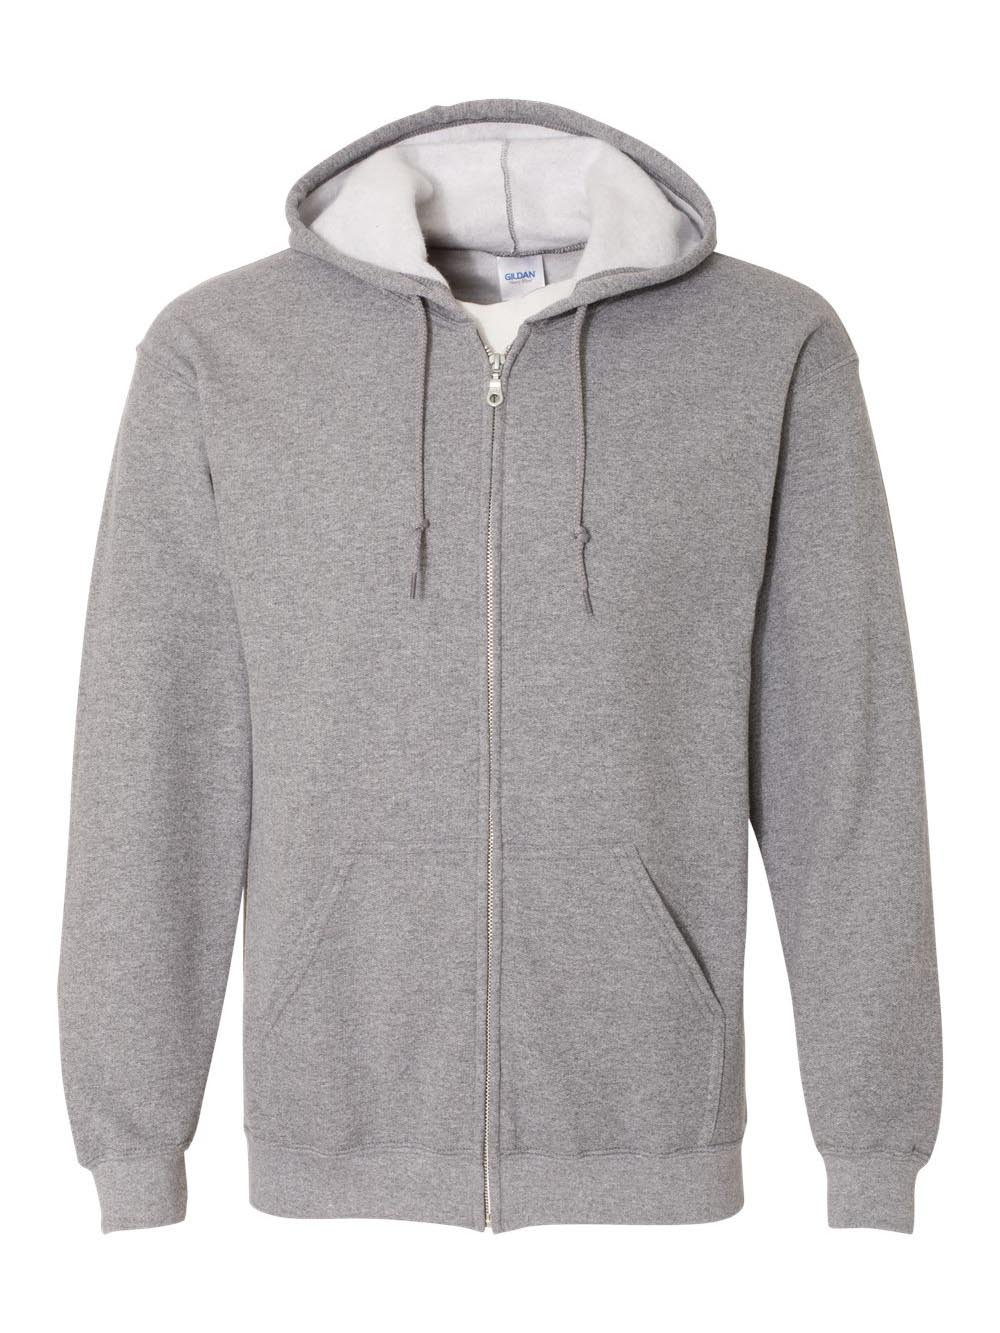 Gildan Heavy Blend Full-Zip Hooded Sweatshirt_Graphite Heather_large